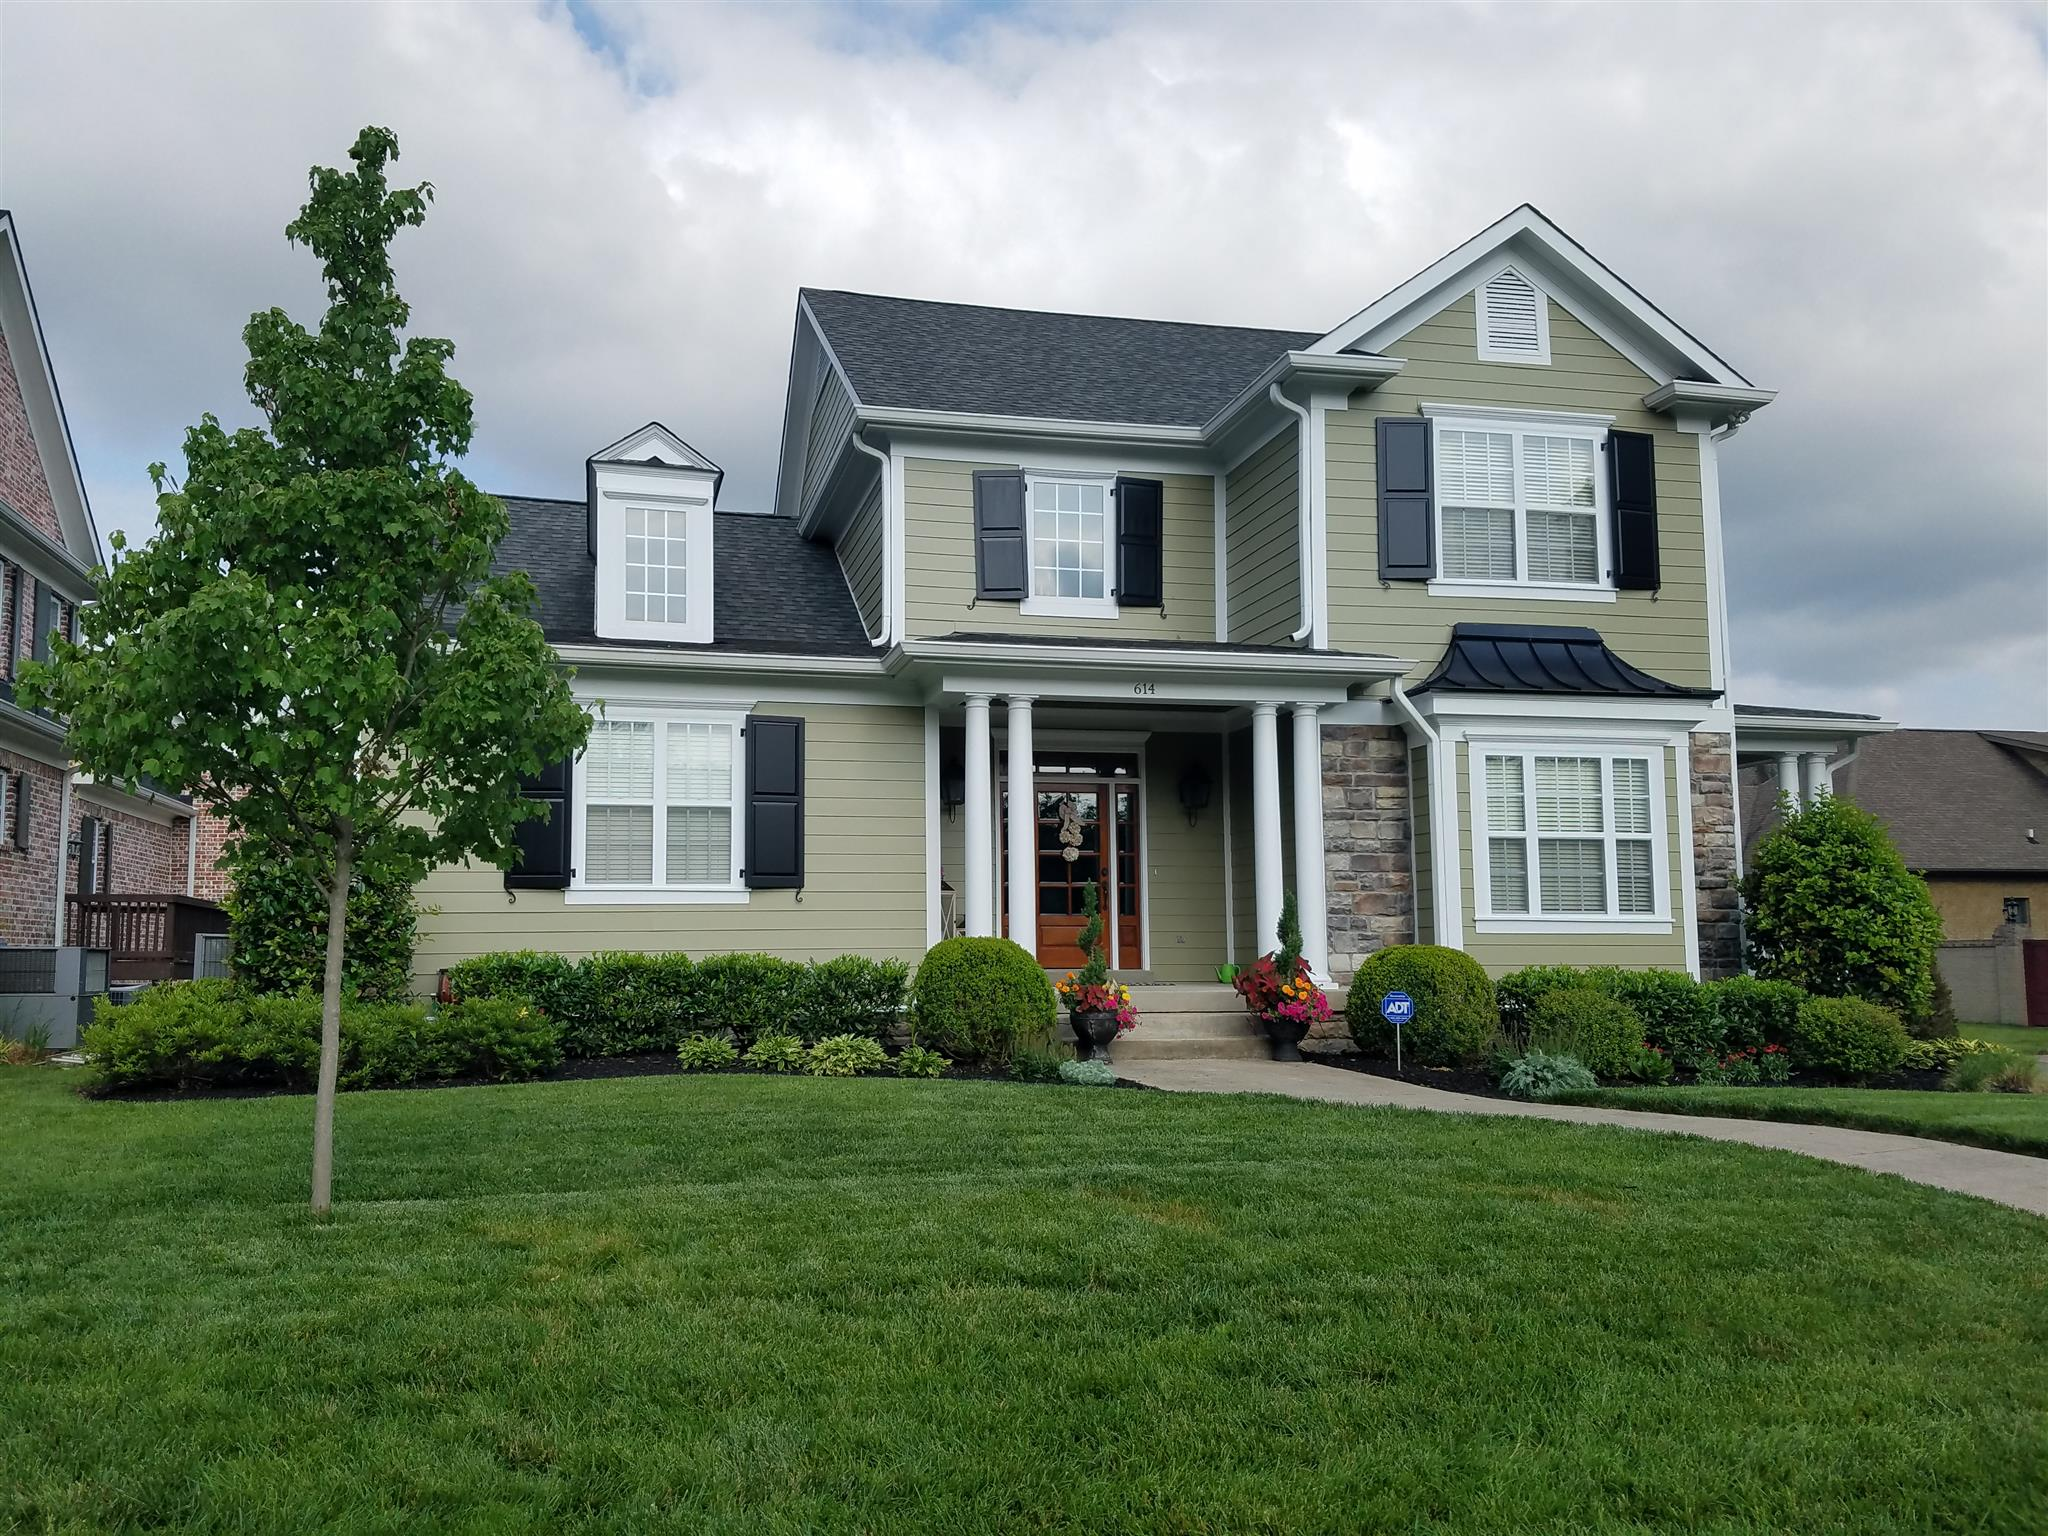 614 Band Dr, Franklin, TN 37064 - Franklin, TN real estate listing